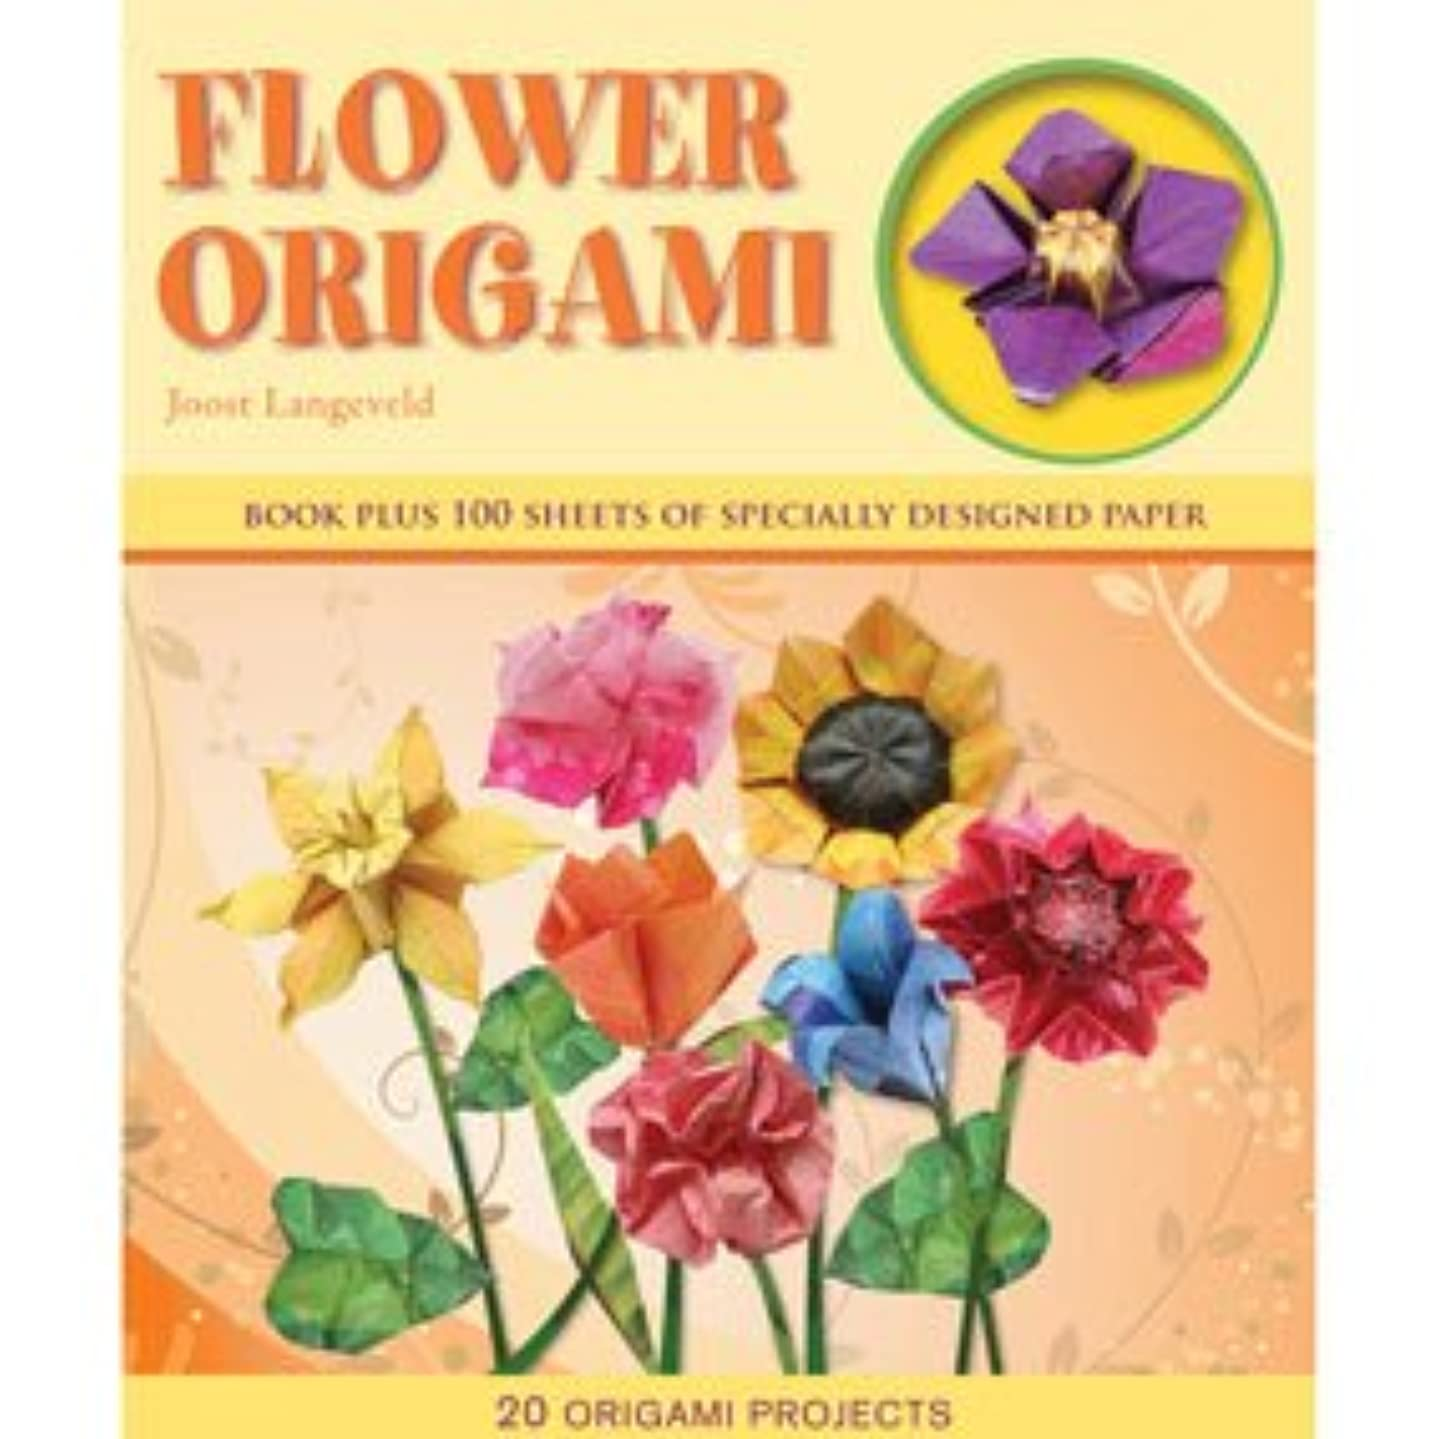 Flower Origami: Book Pulus 100 Sheets Of Specially Designed Paper